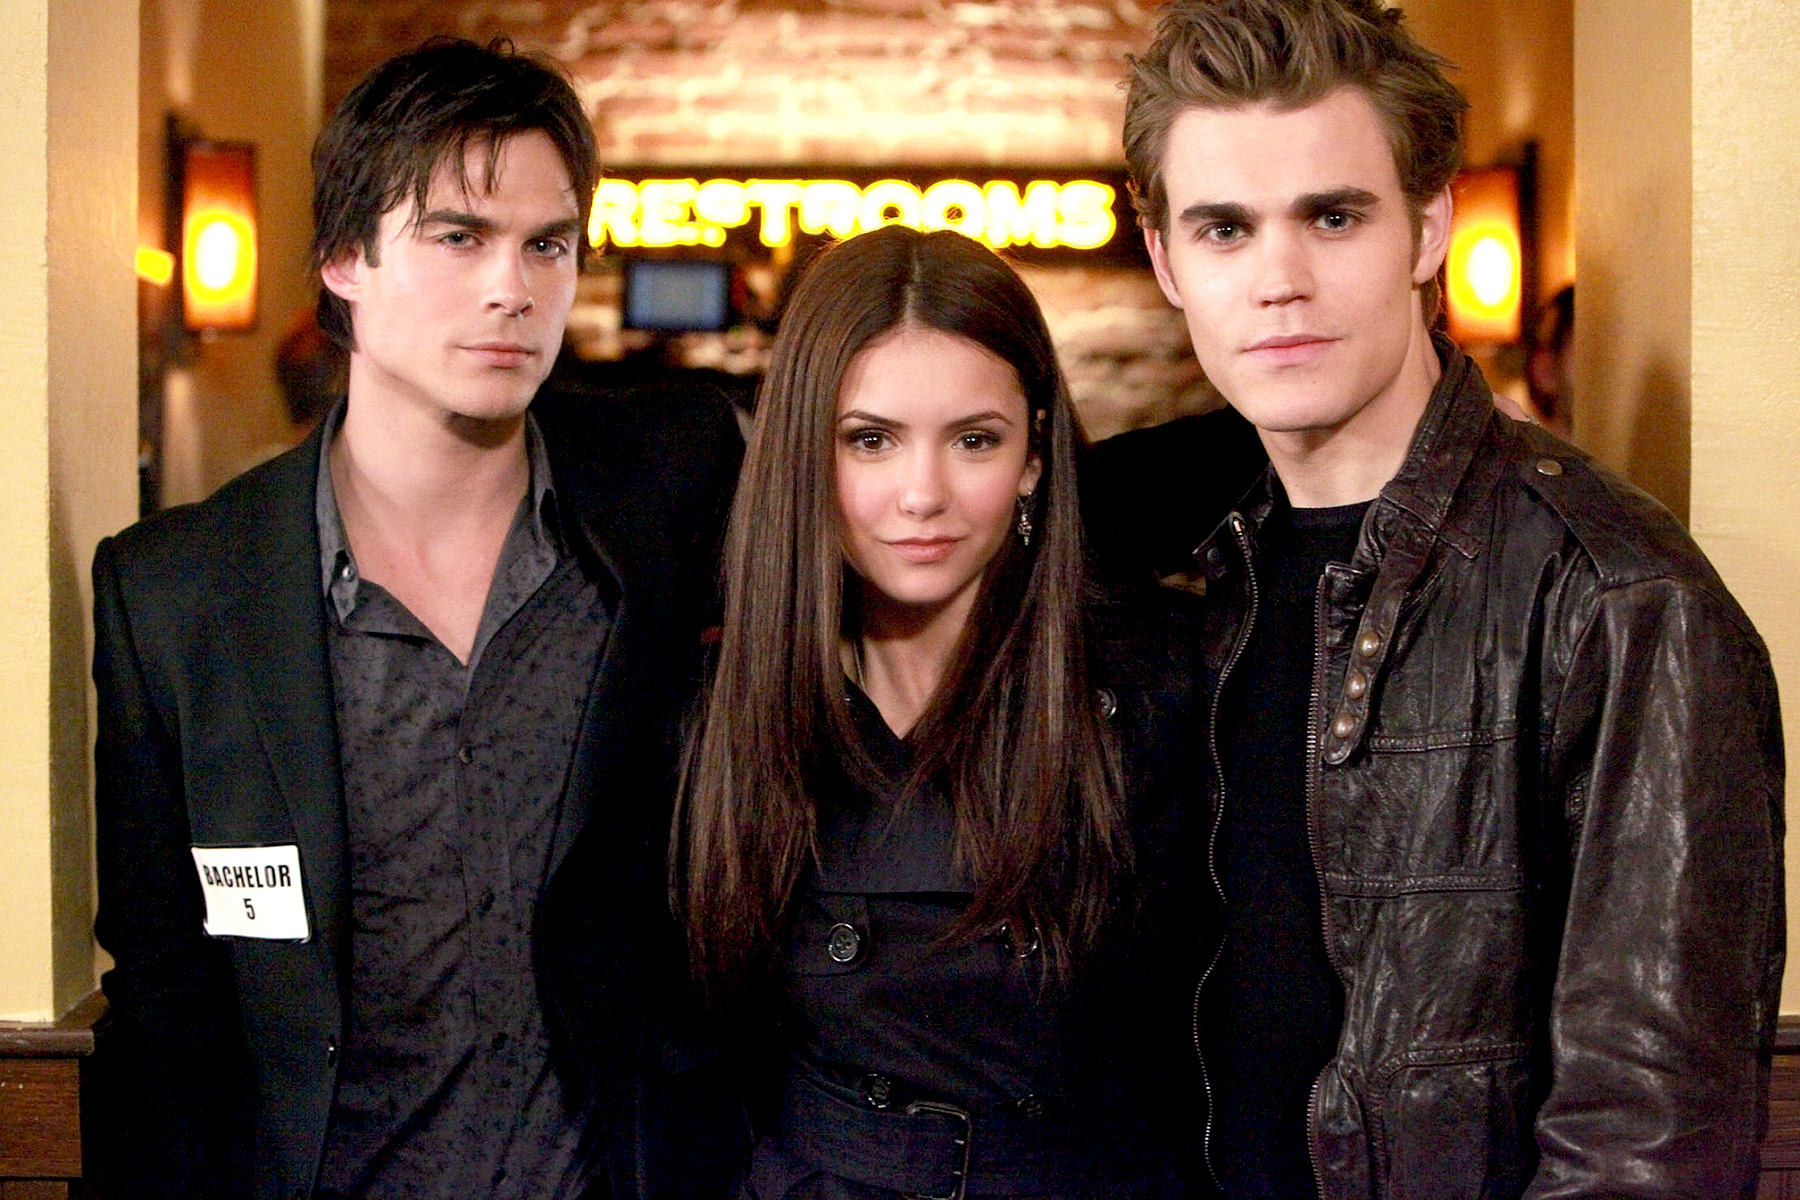 Ian Somerhalder as Damon, Nina Dobrev as Elena and Paul Wesley as Stefan in The Vampire Diaries